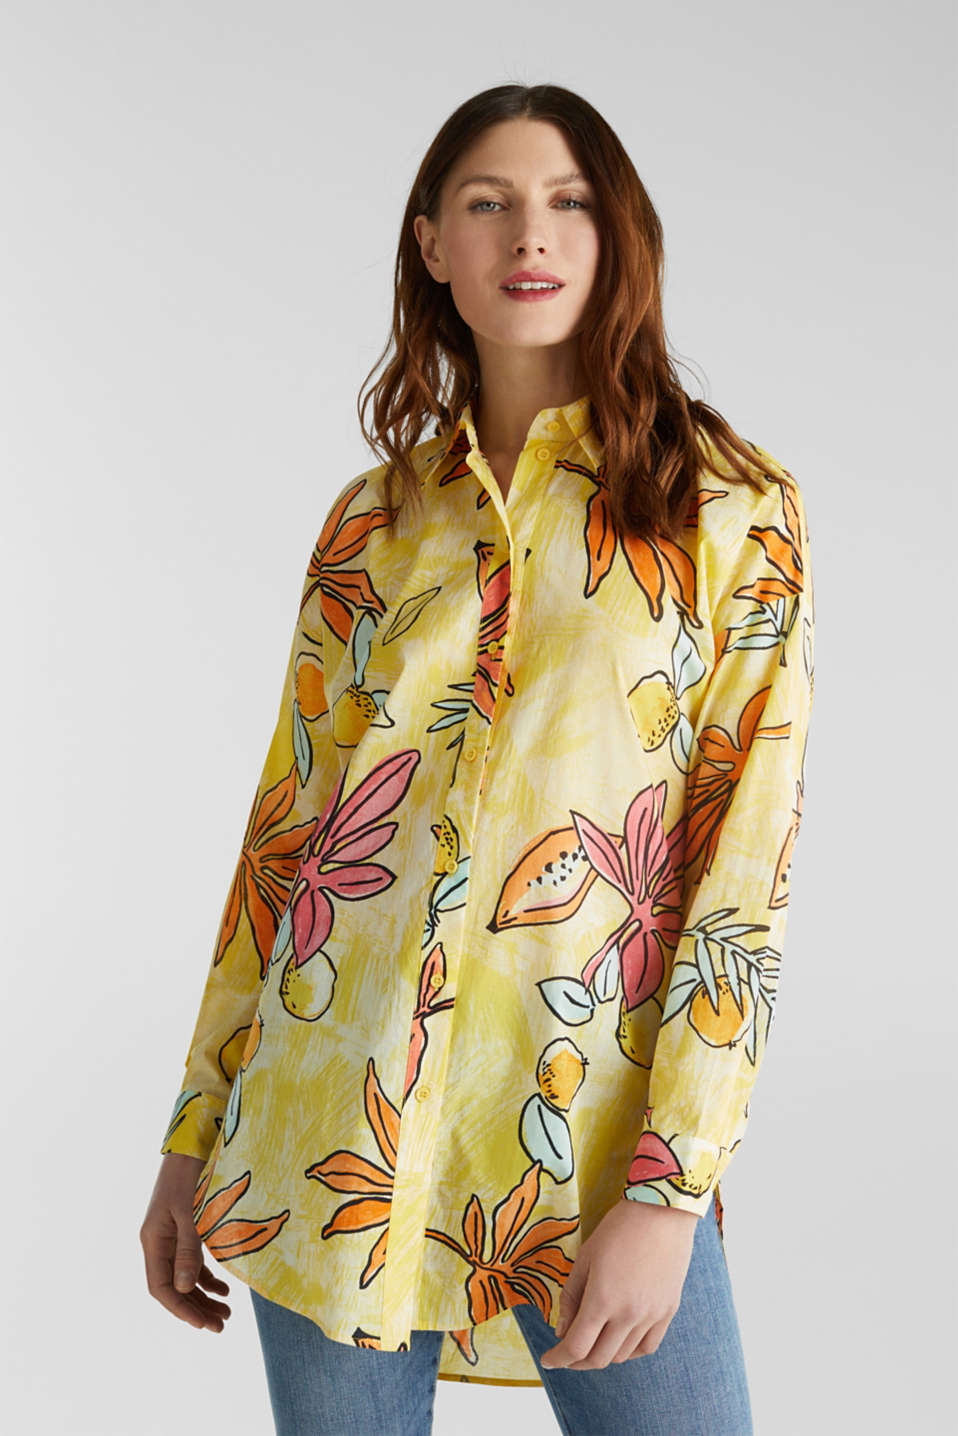 Longbluse mit Print, 100% Baumwolle, BRIGHT YELLOW 4, detail image number 0